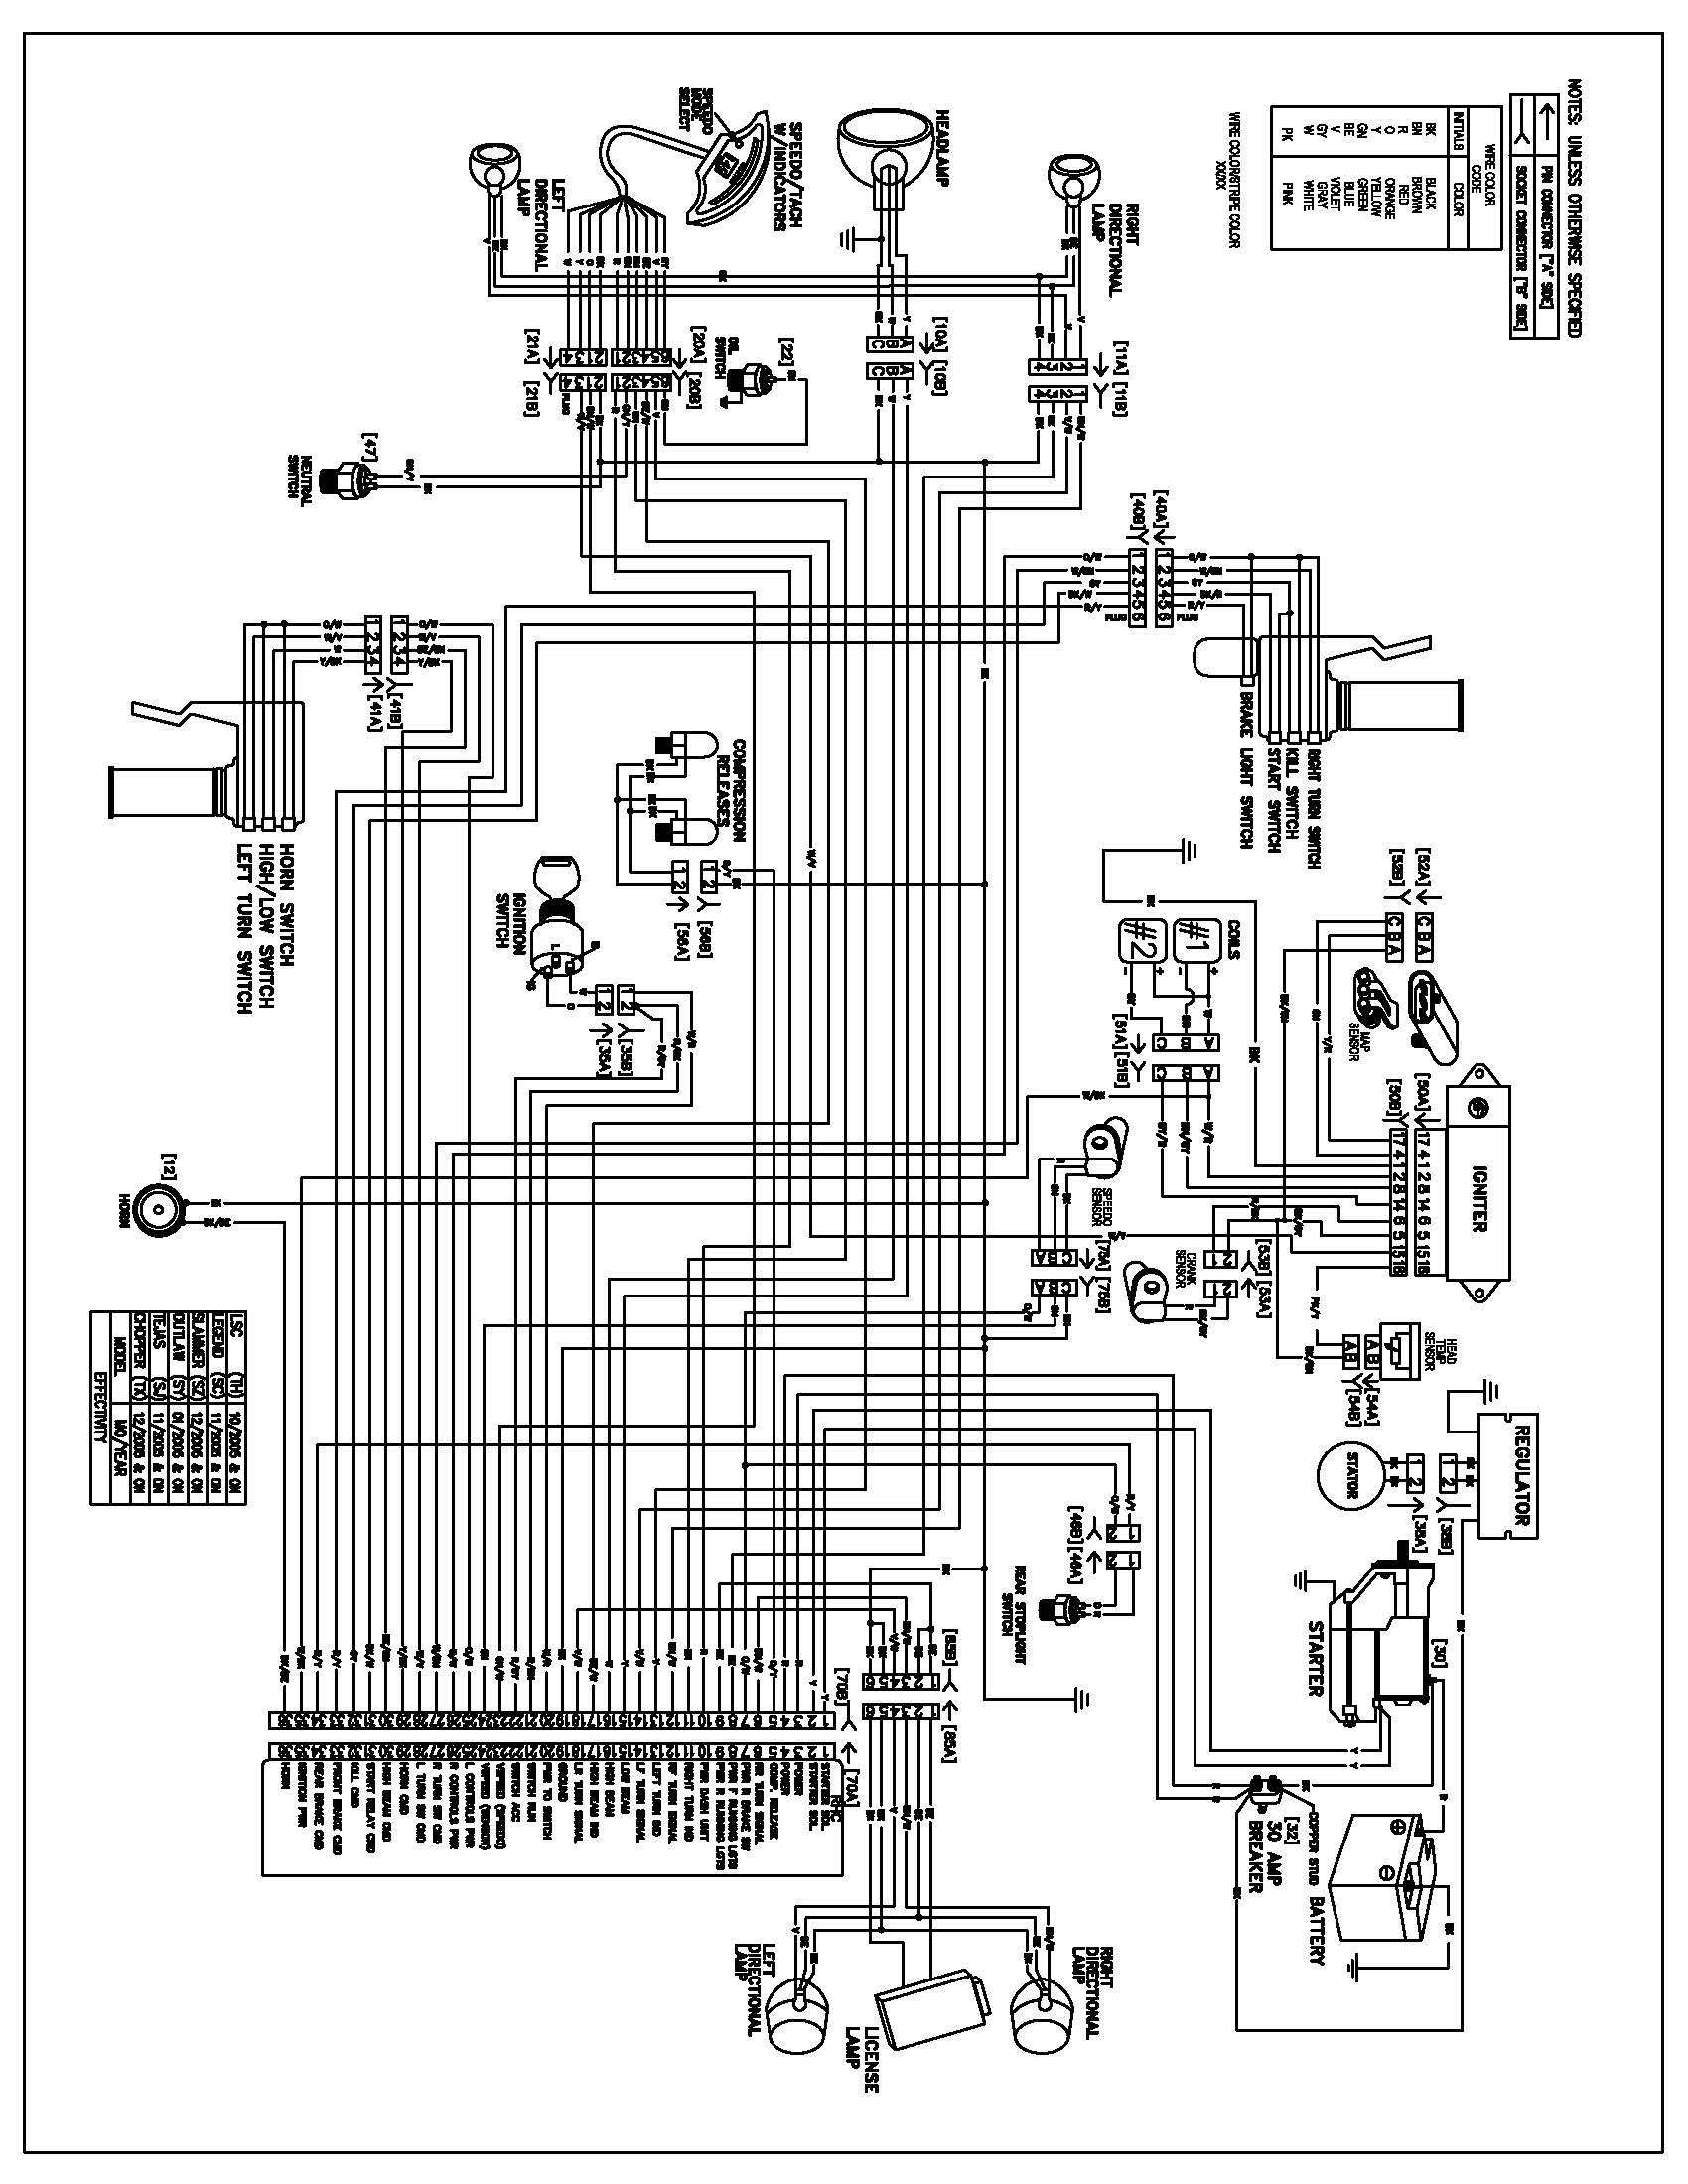 American Ironhorse Wiring Diagram on